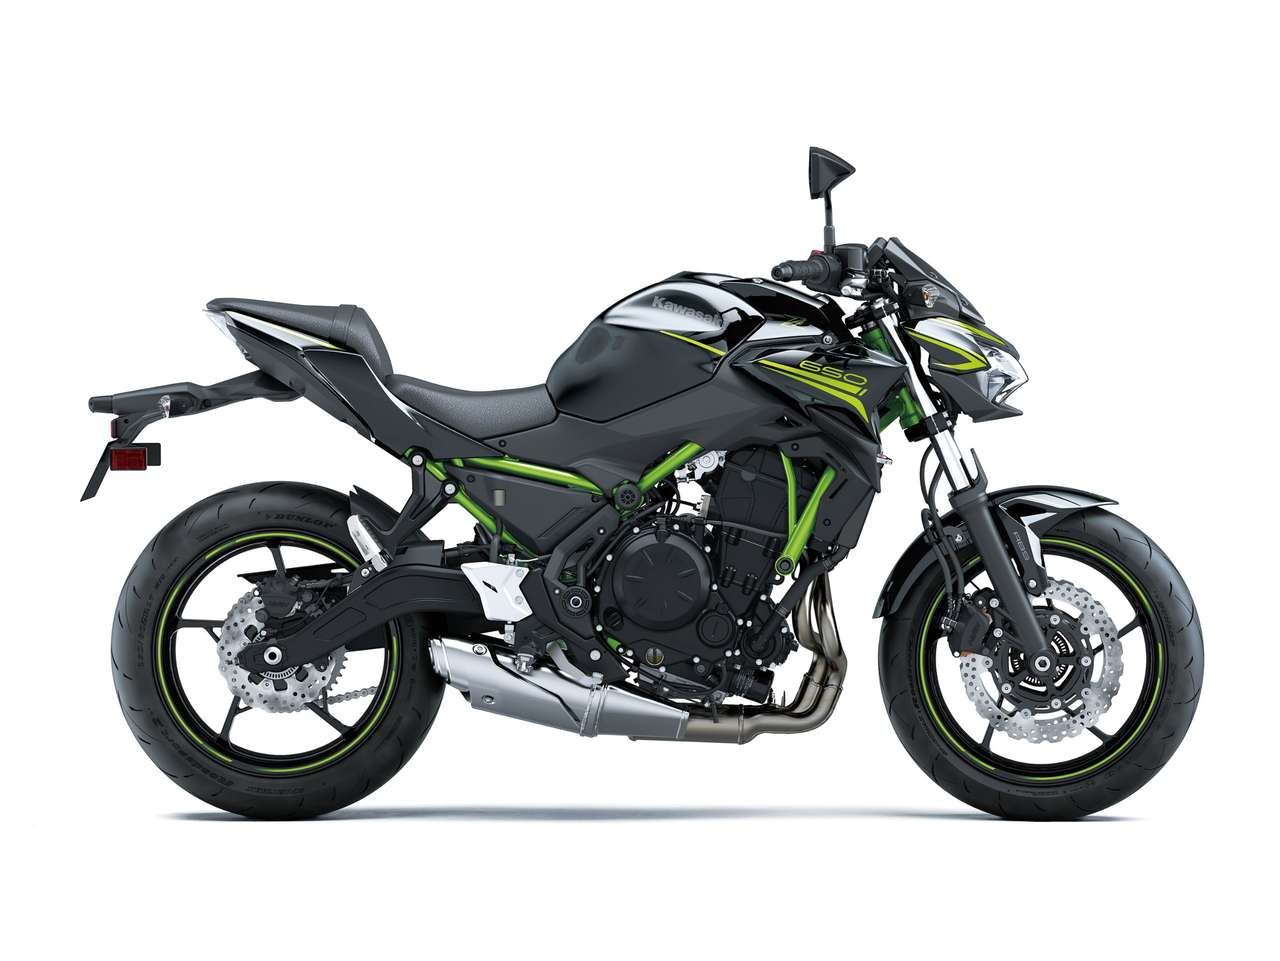 Z650 Metallic Spark Black